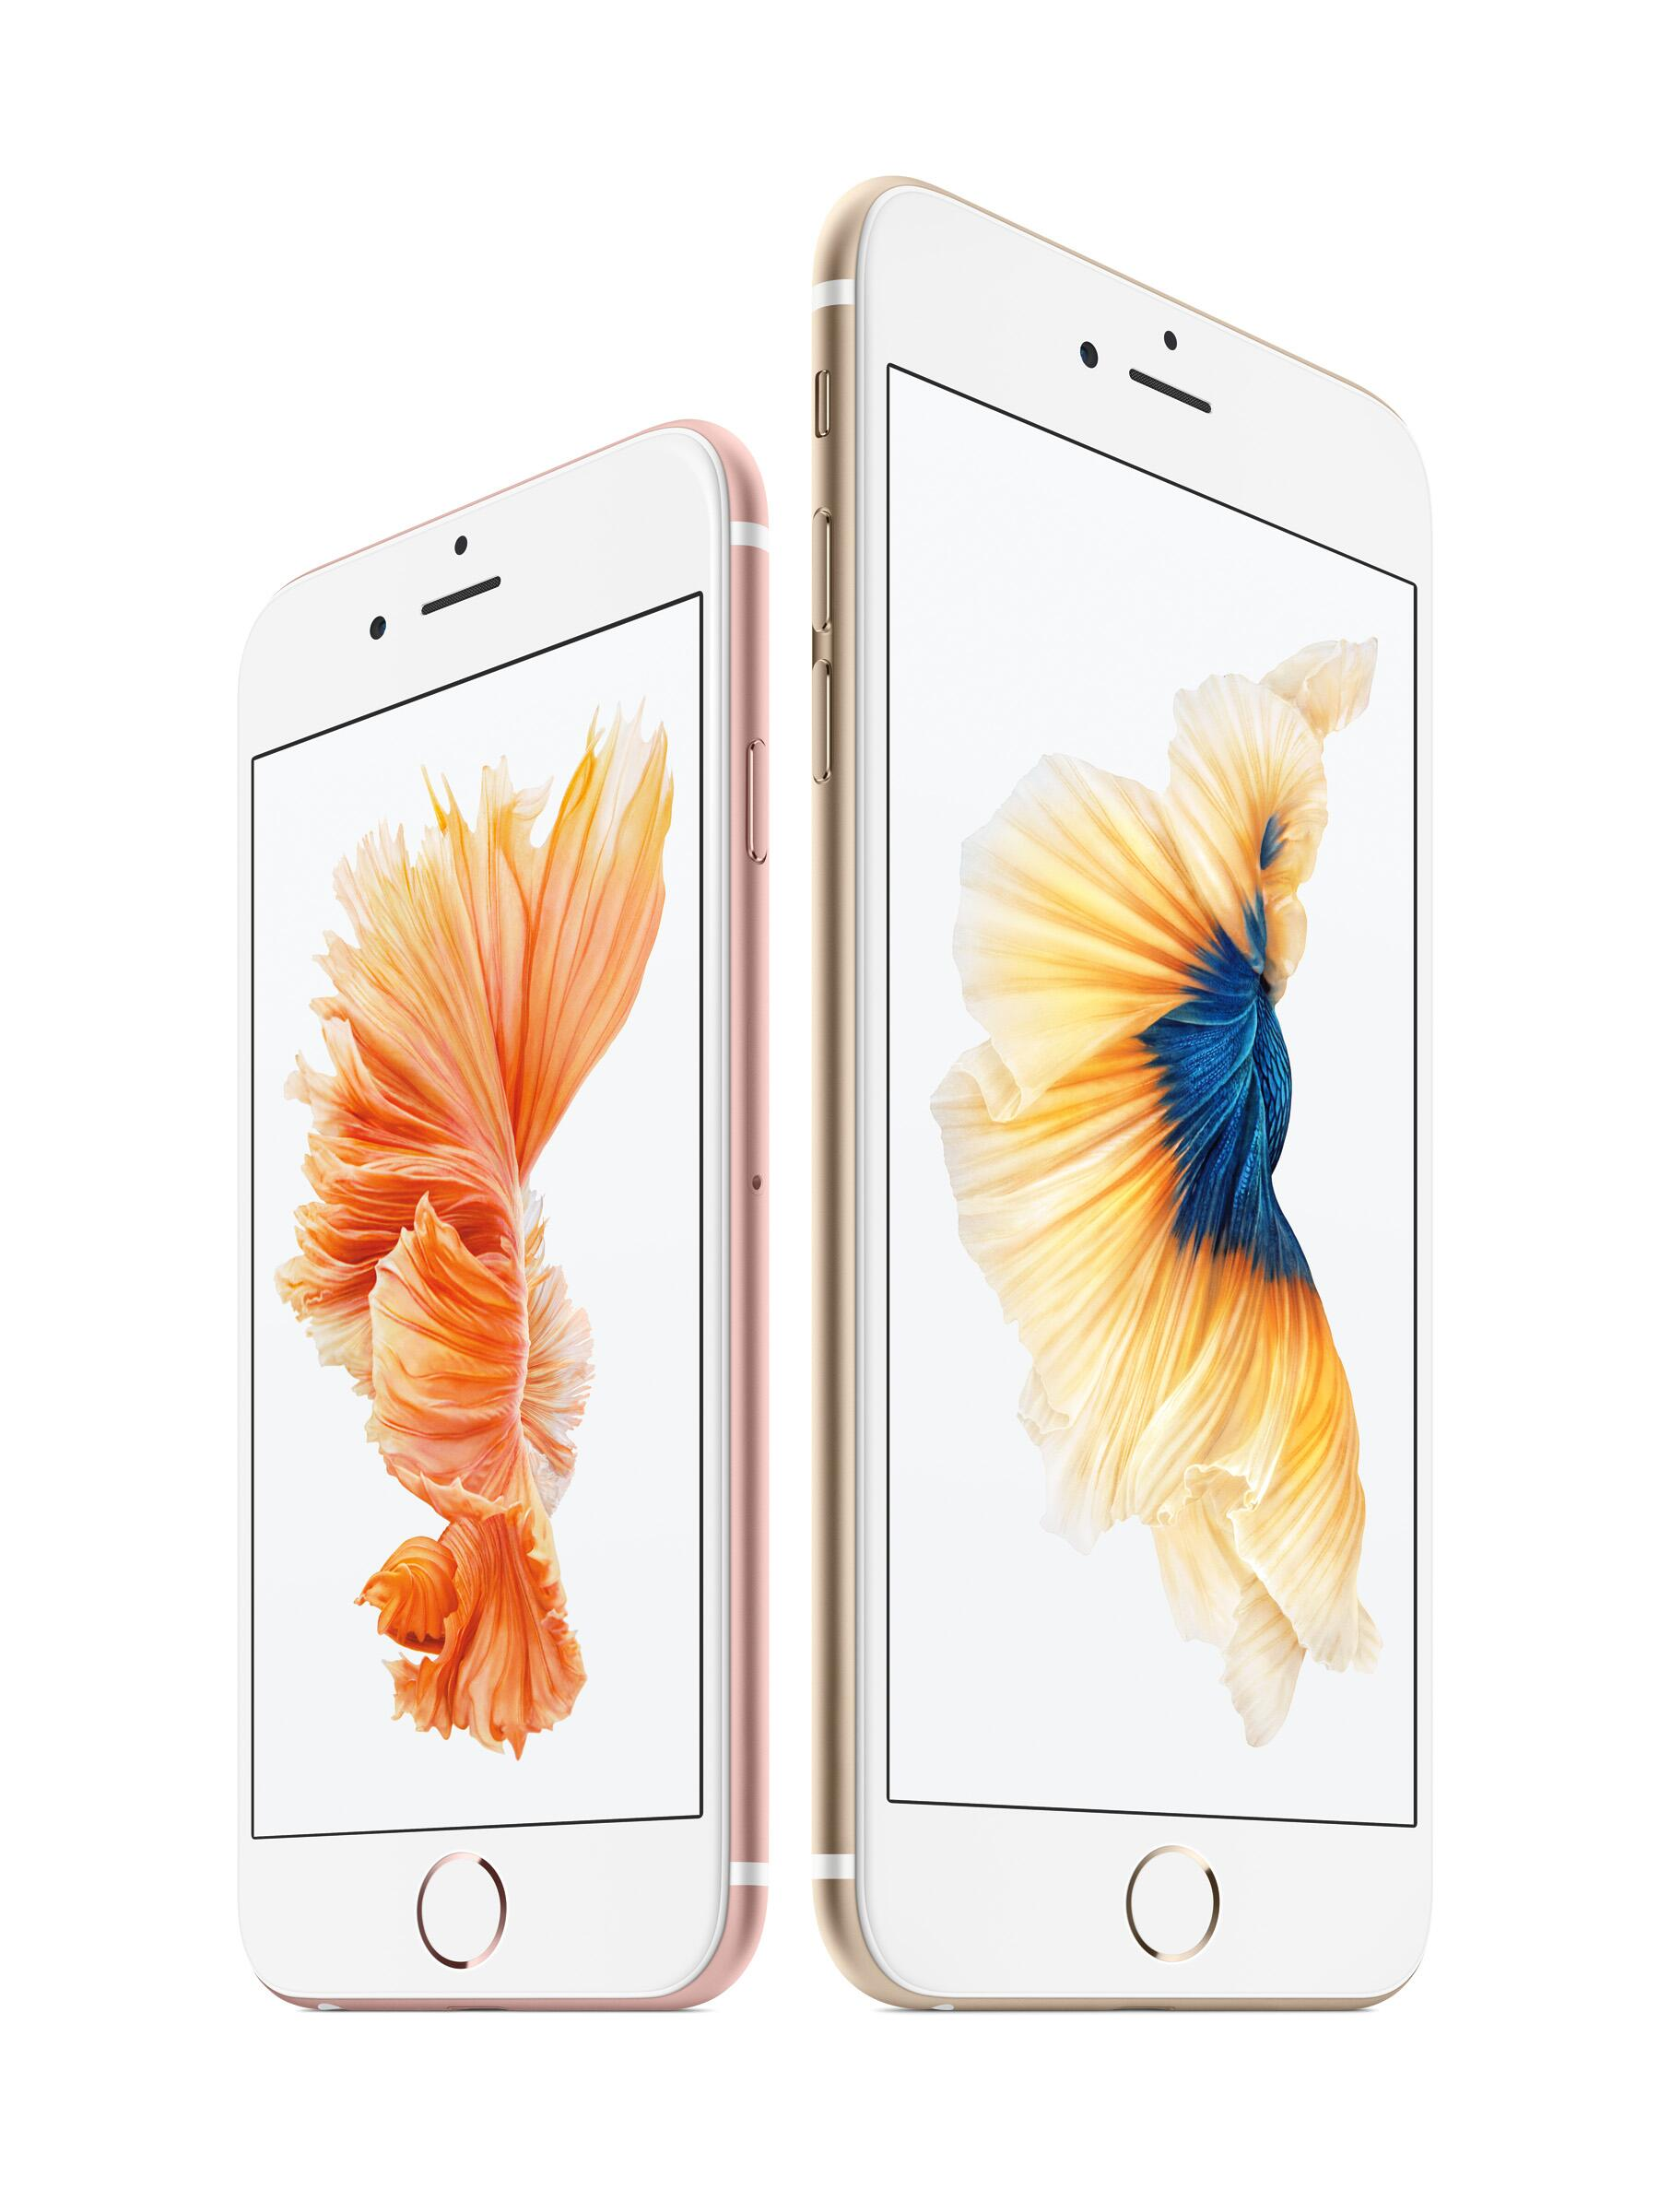 Bild zu iPhone 6S, iPhone 6S Plus